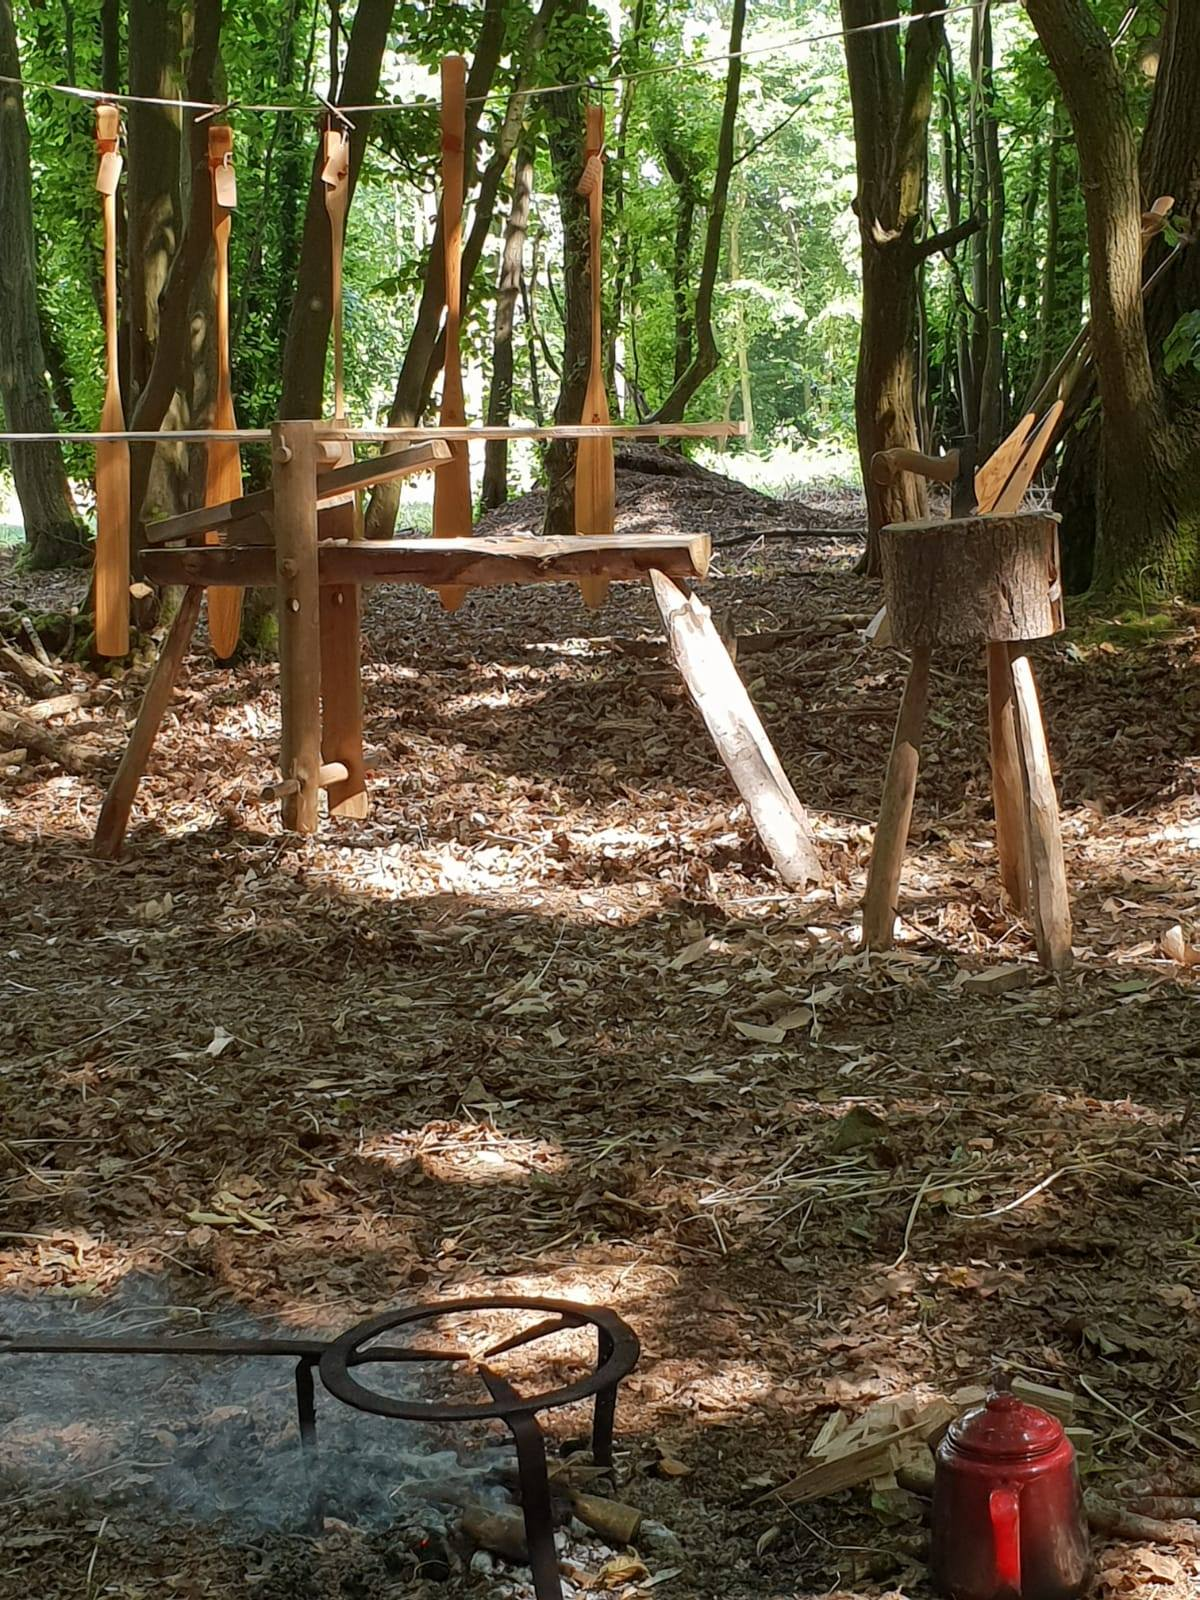 LBN 10 days living on the frontier camp woodcraft